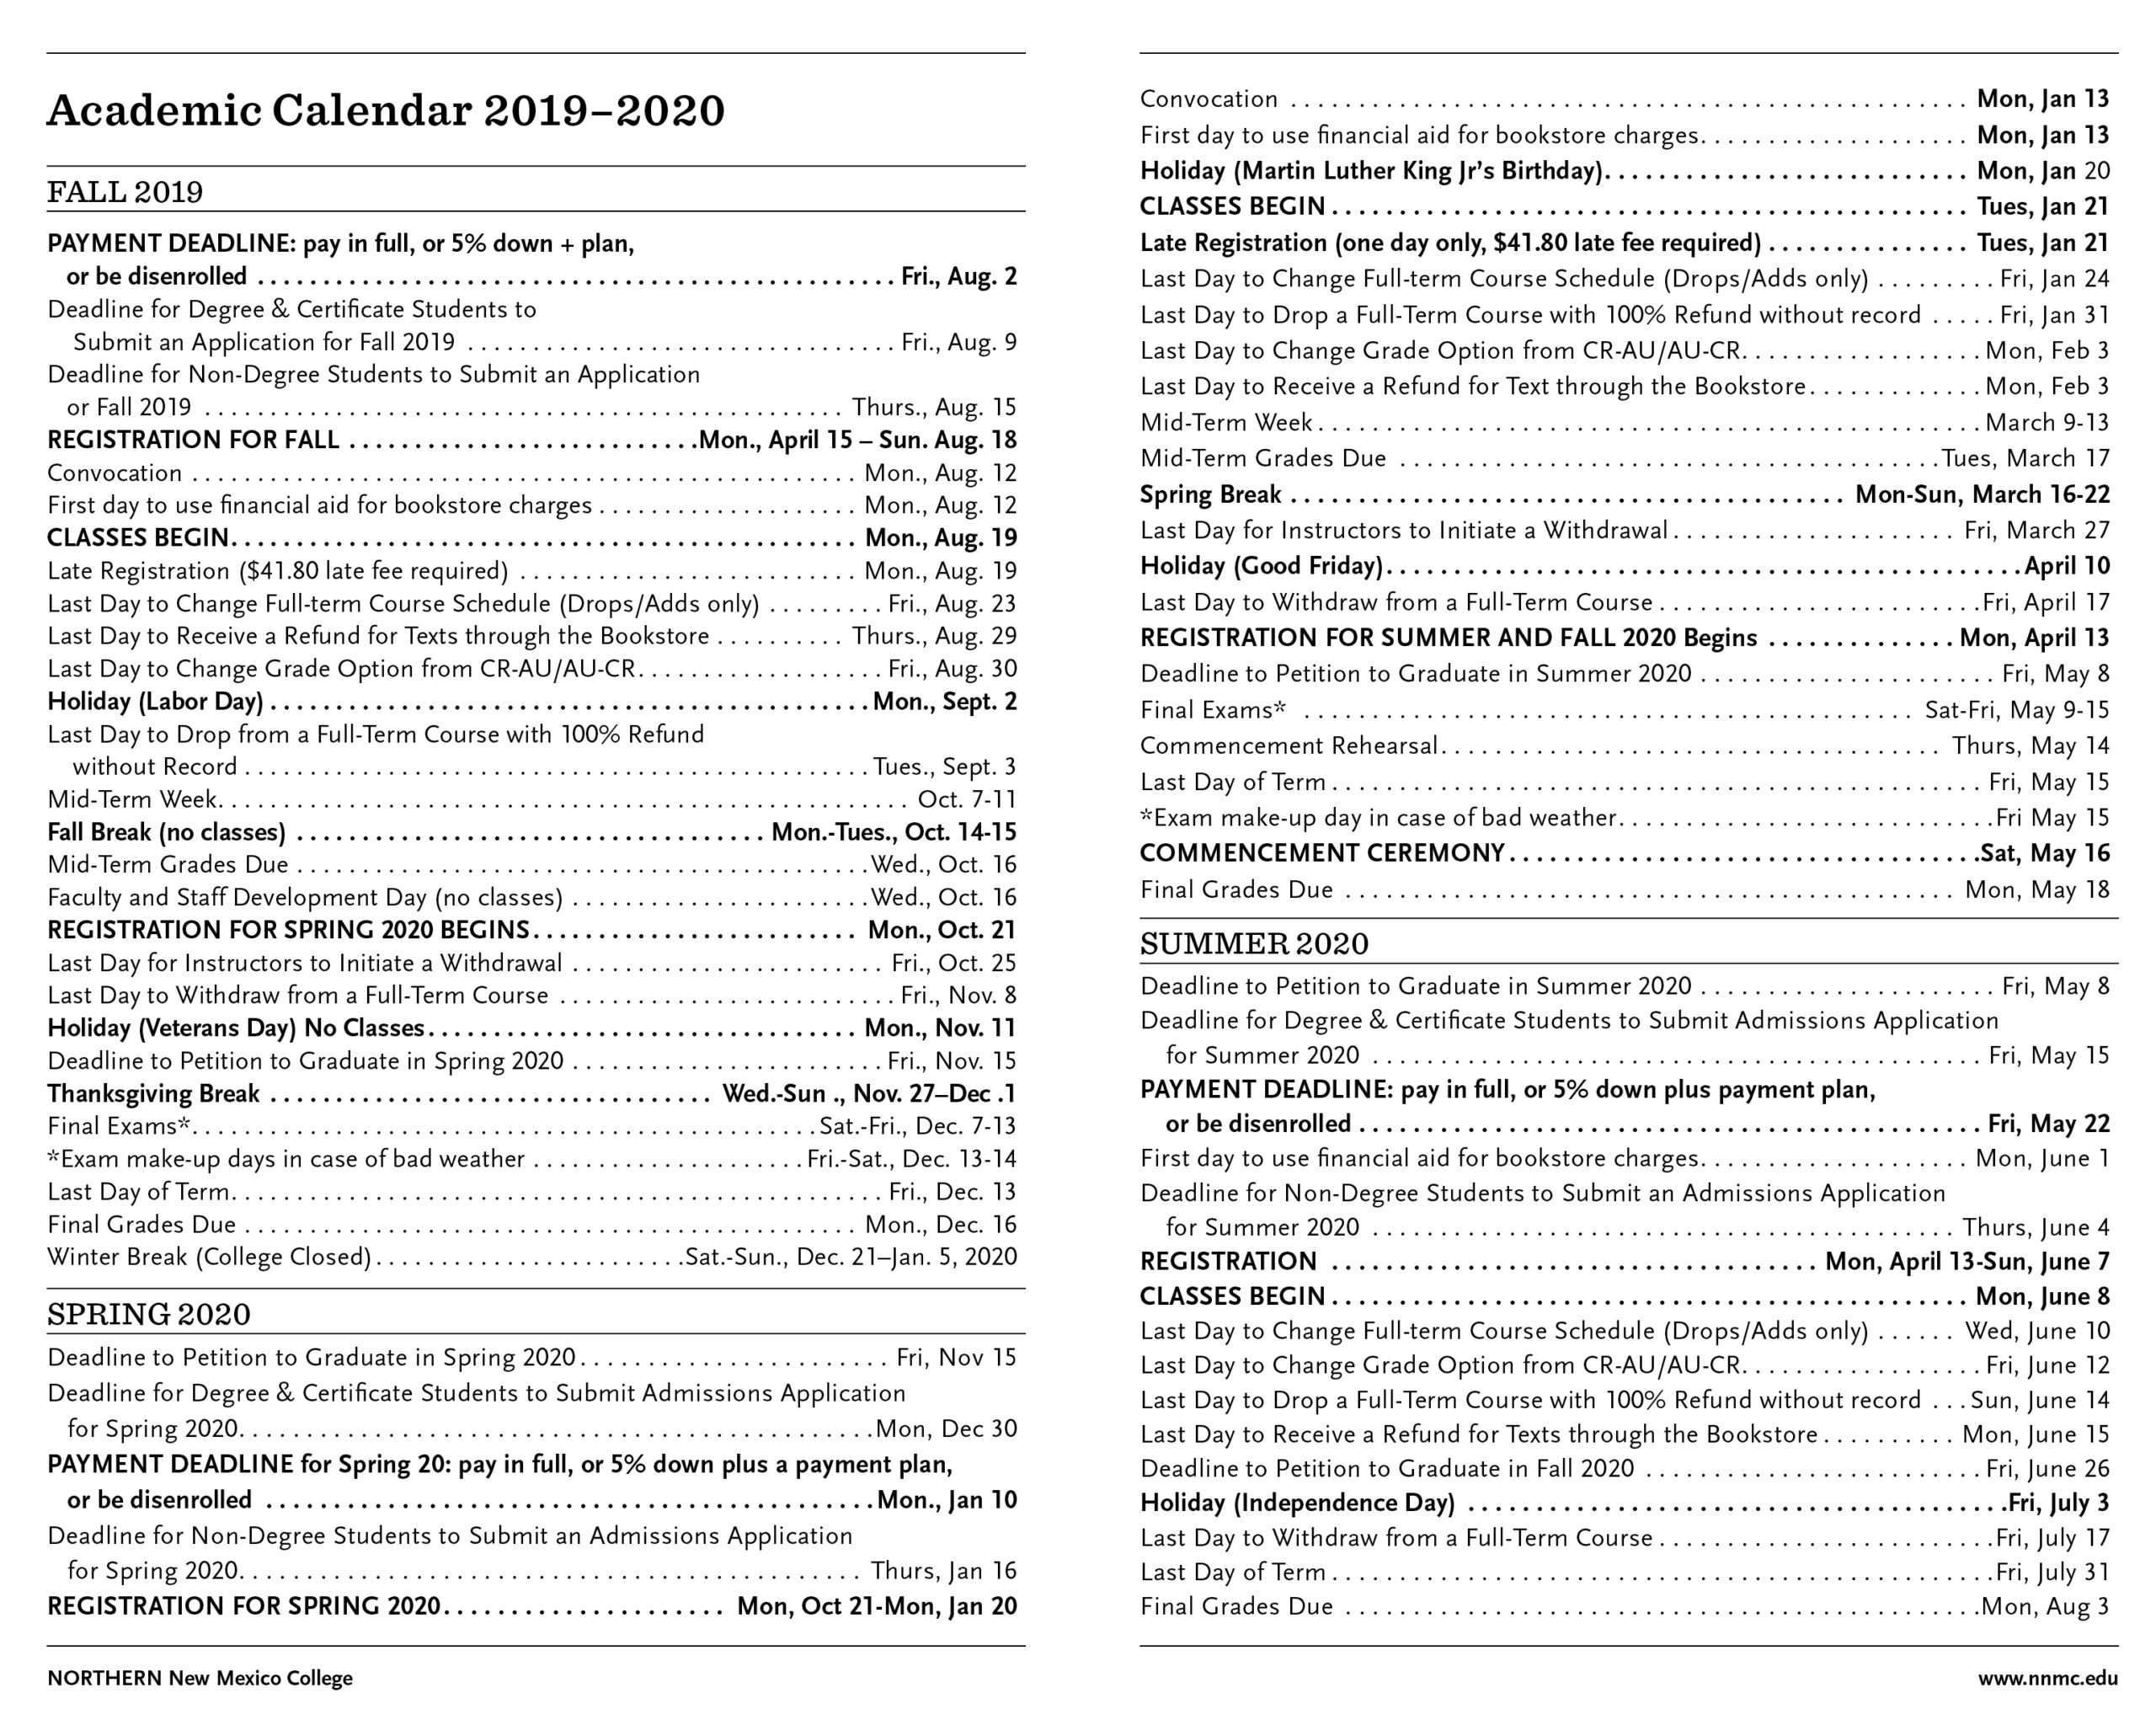 Academic Calendar 2019-20 | Northern New Mexico College